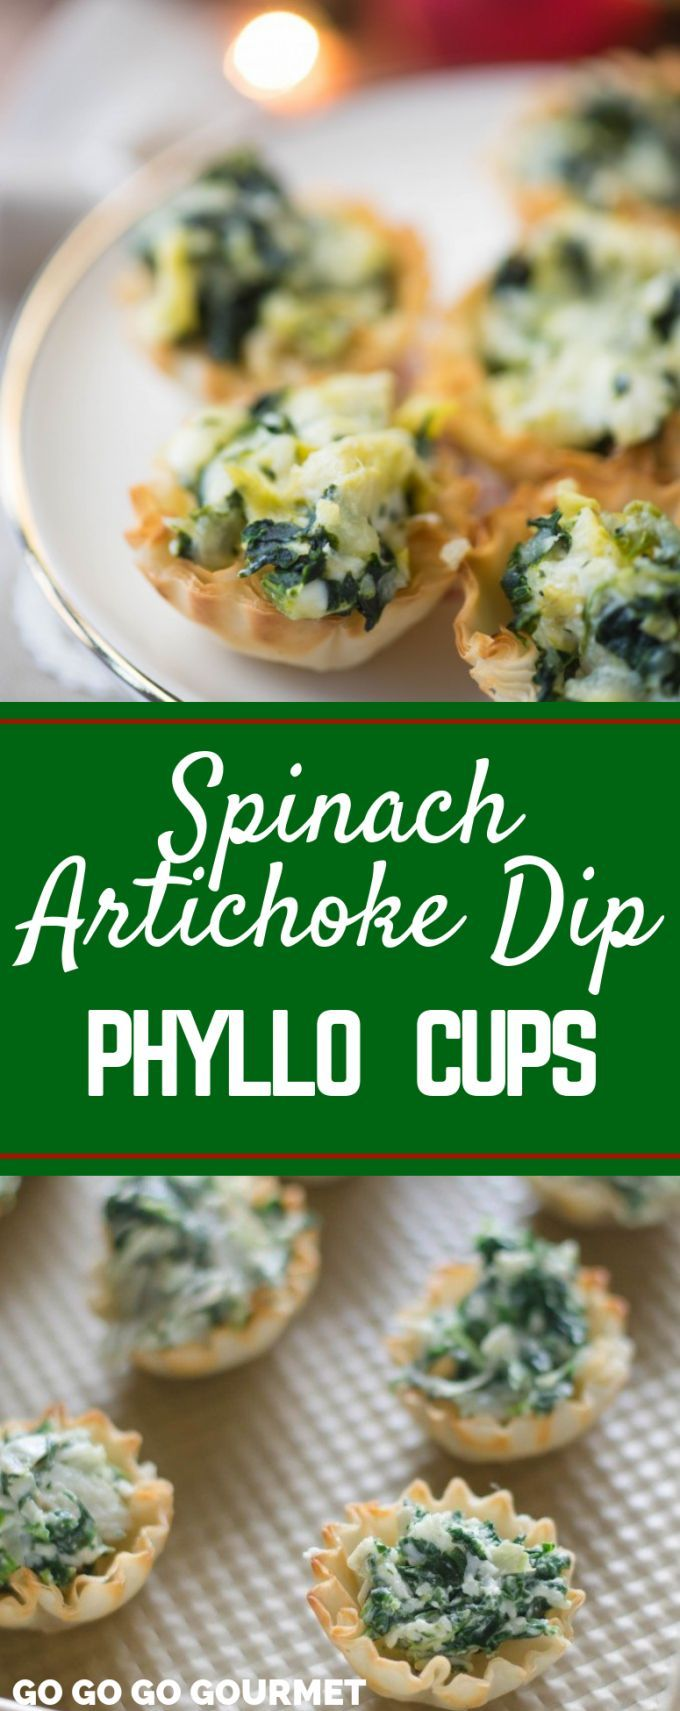 Spinach Artichoke Dip Appetizer Phyllo Cups - Holiday Appetizer Ideas